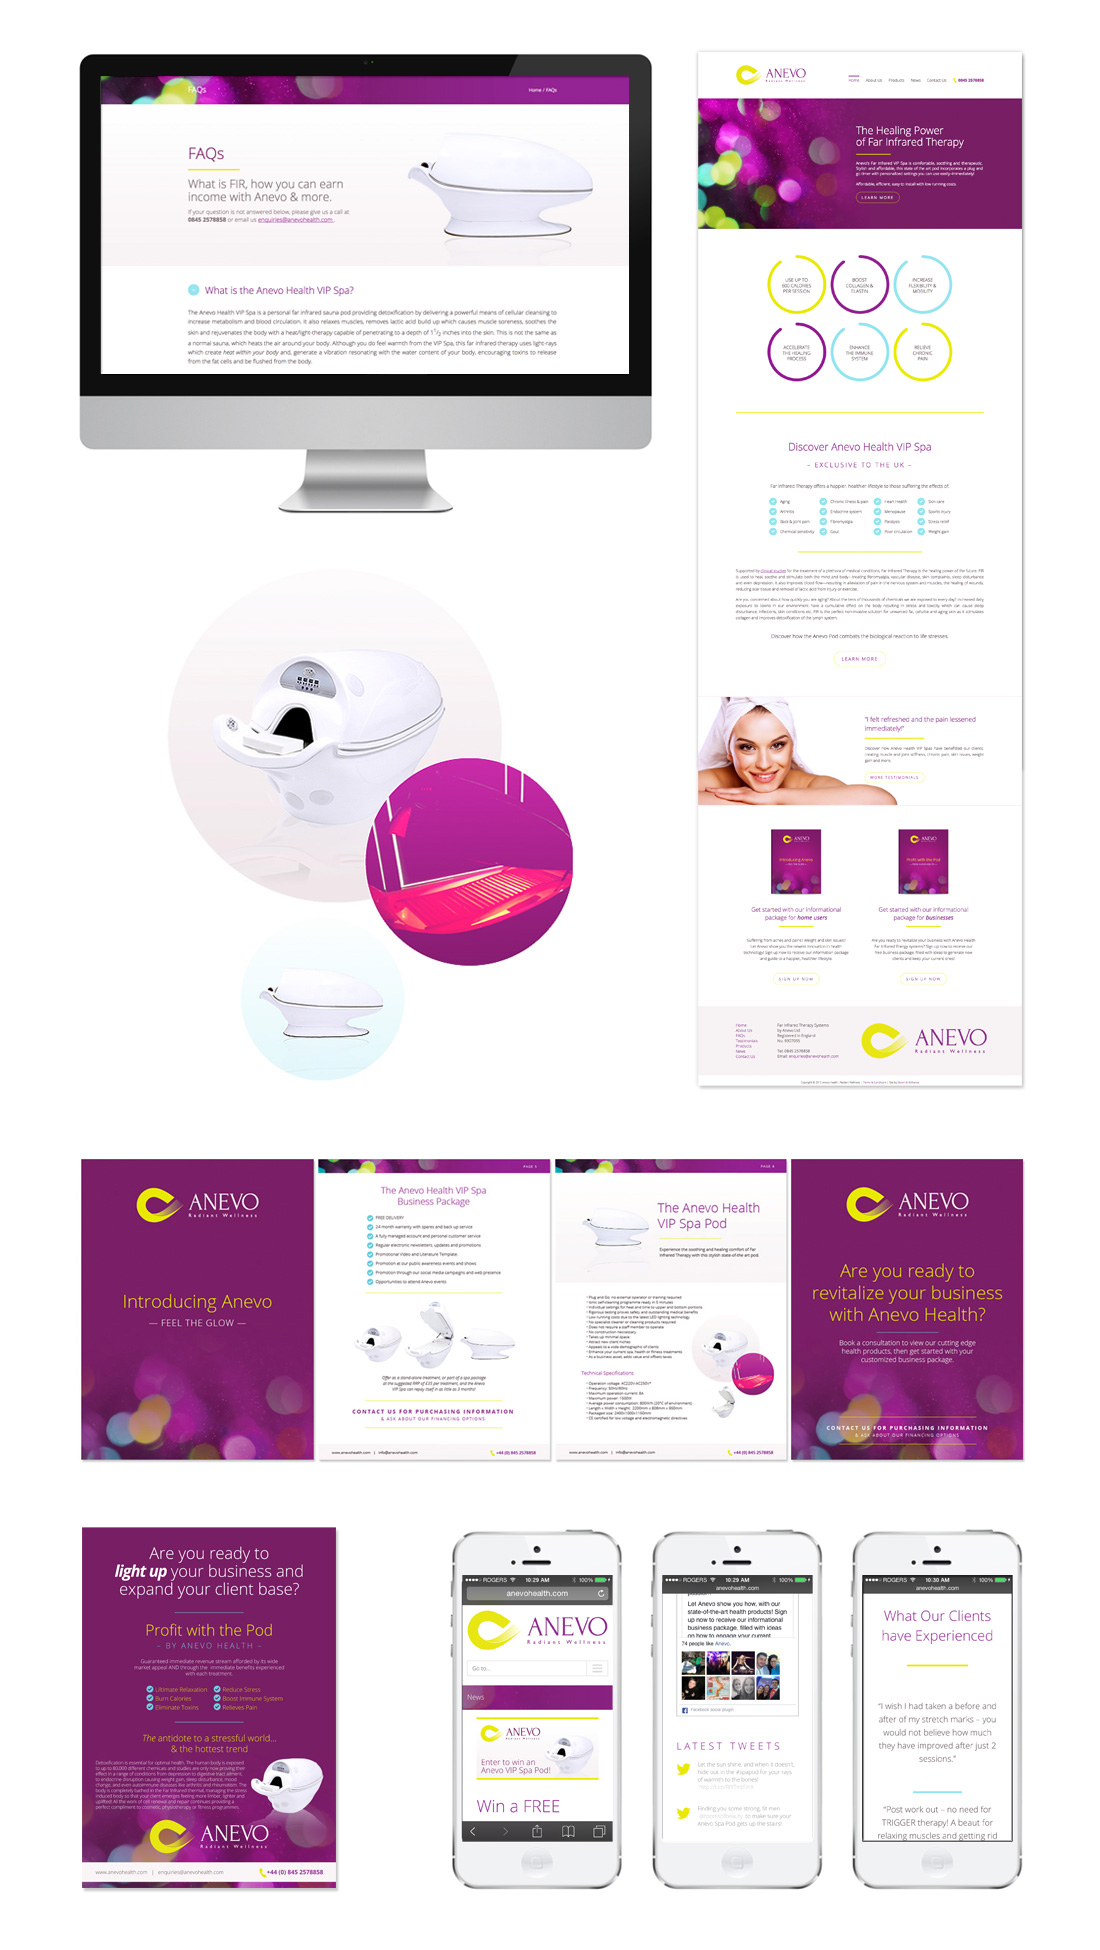 anevo-health-website-design-branding-winnipeg-manitoba-responsive-mobile-optimized-board